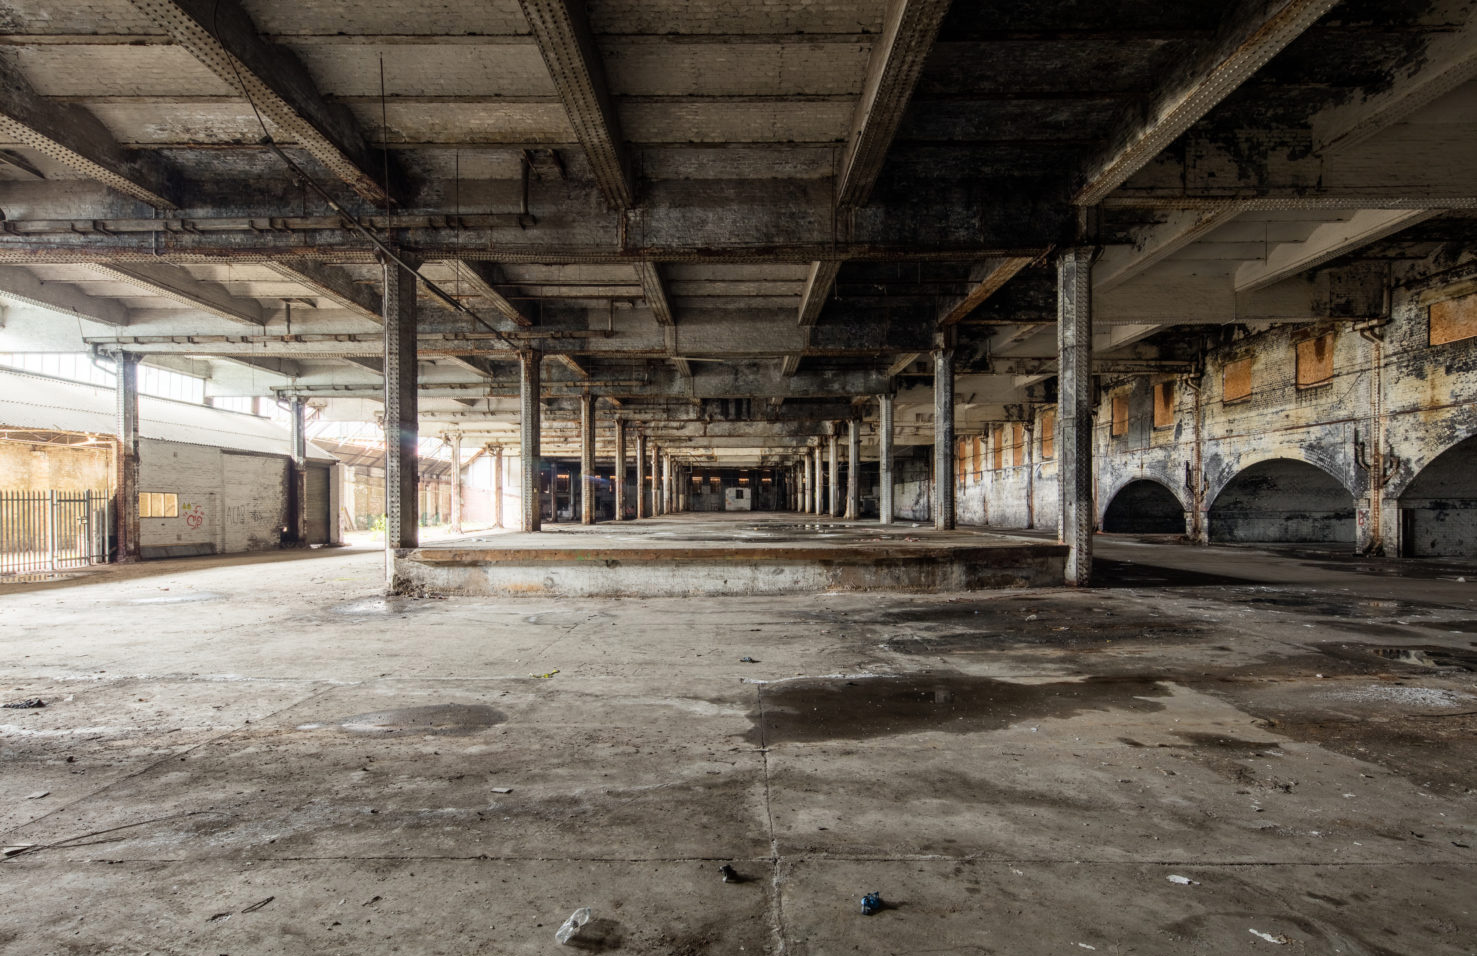 Manchester's defunct former train station to be transformed into 10,000 capacity venue